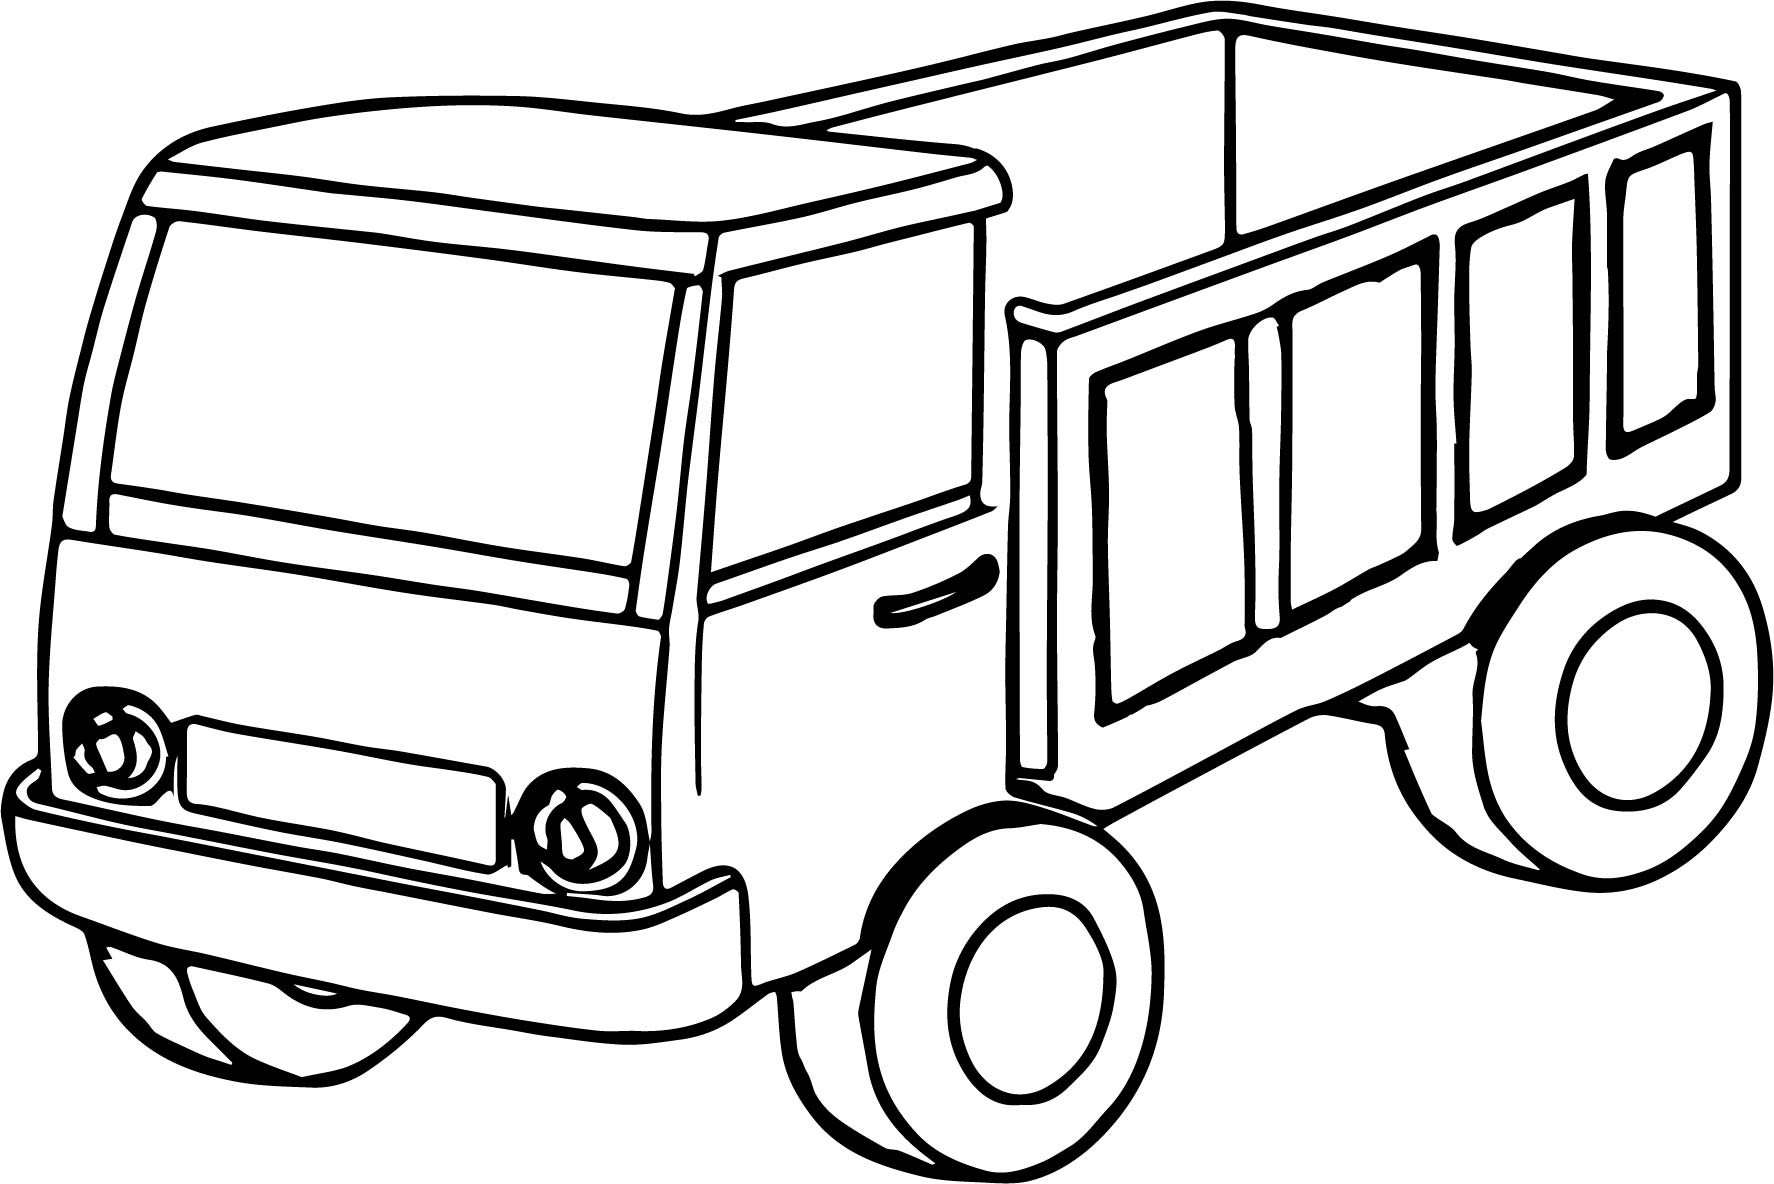 coloring pages for kids truck semi truck coloring pages to download and print for free pages kids truck for coloring